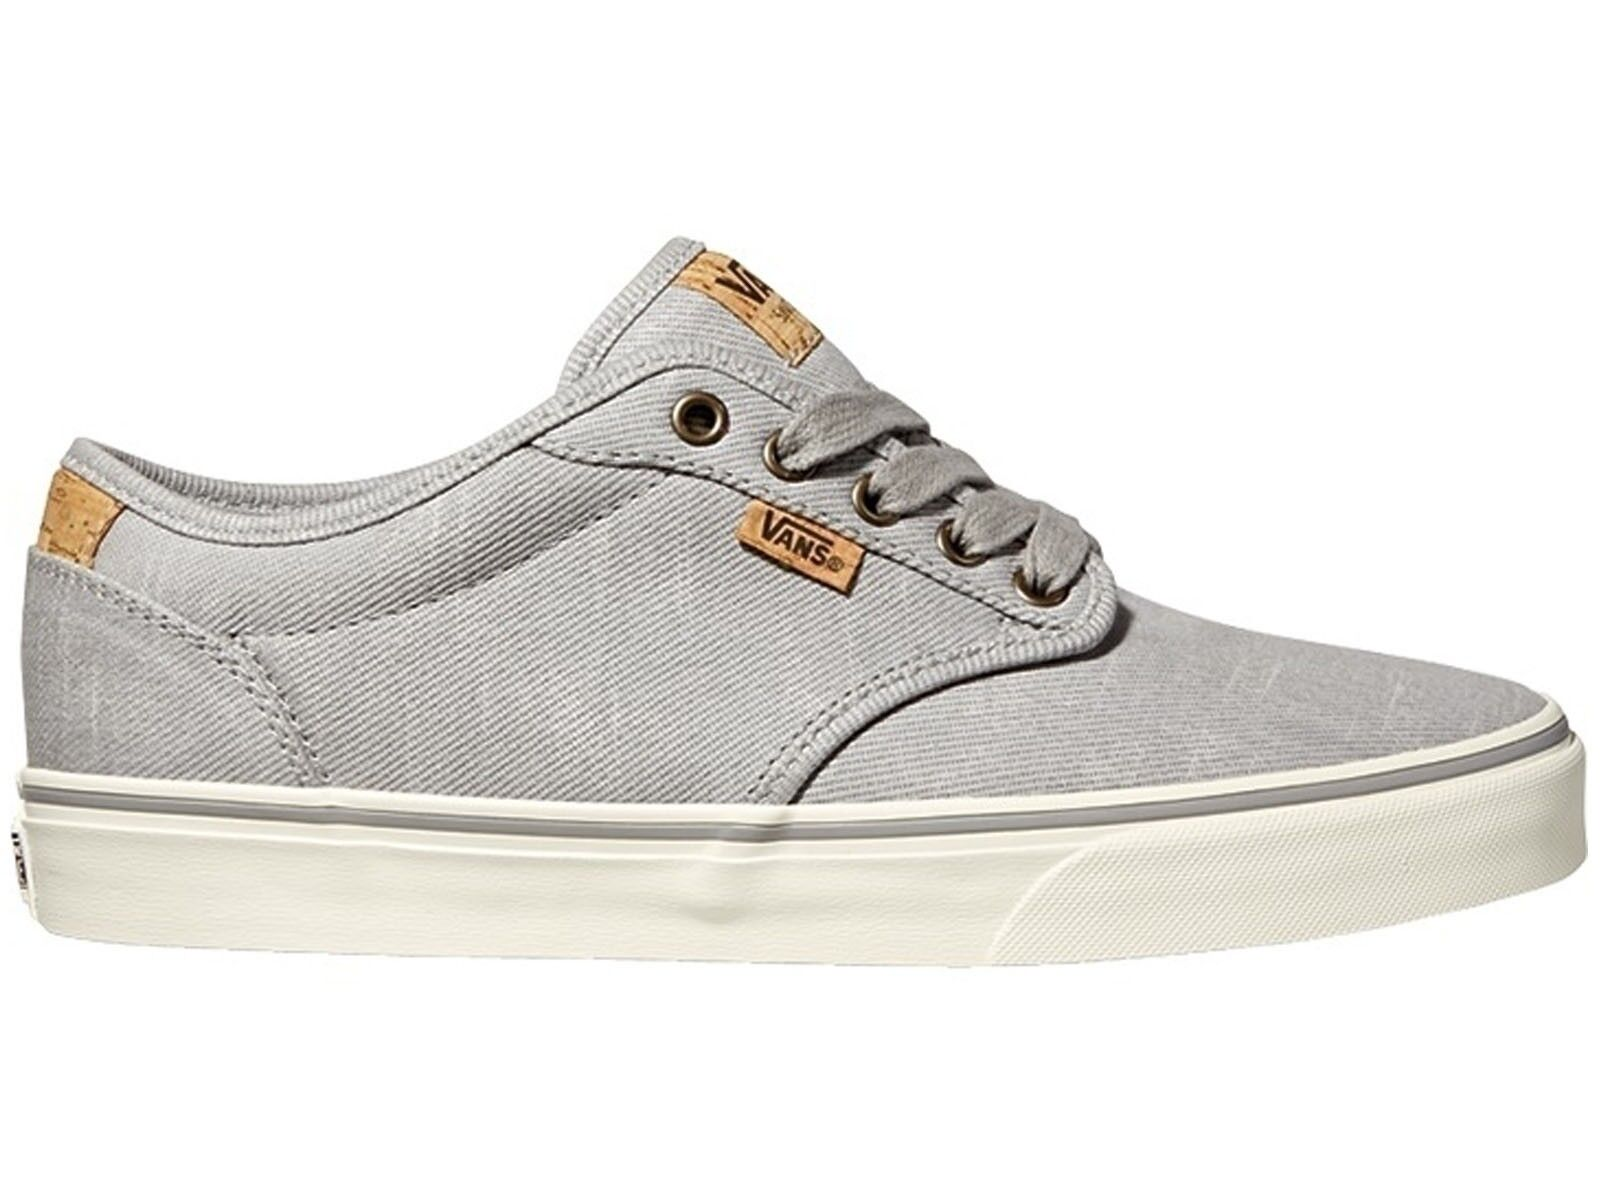 Zapatos hombres VANS  VXB2ILL  ATWOOD DELUXE gris